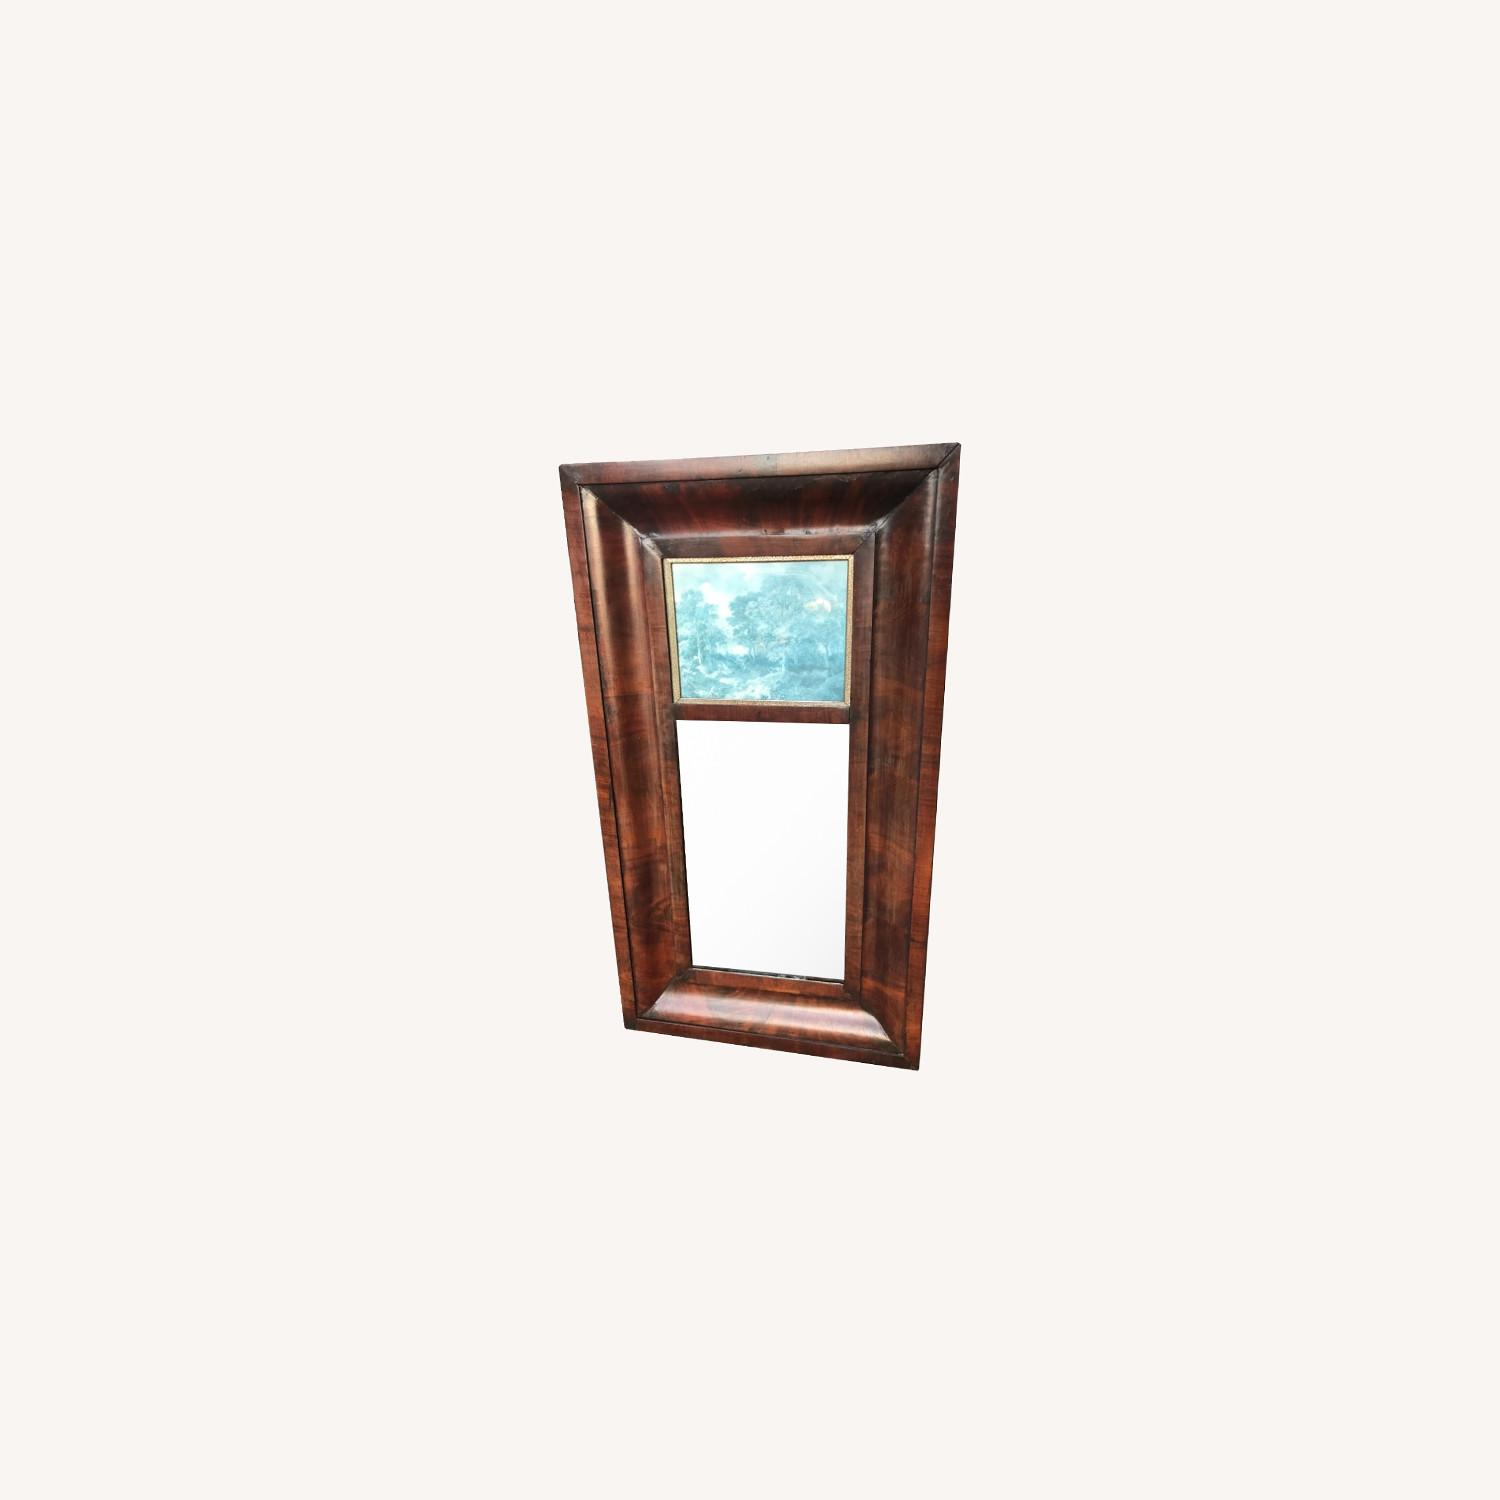 Antique 1900s Mahogany Framed Mirror w/ Picture - image-0